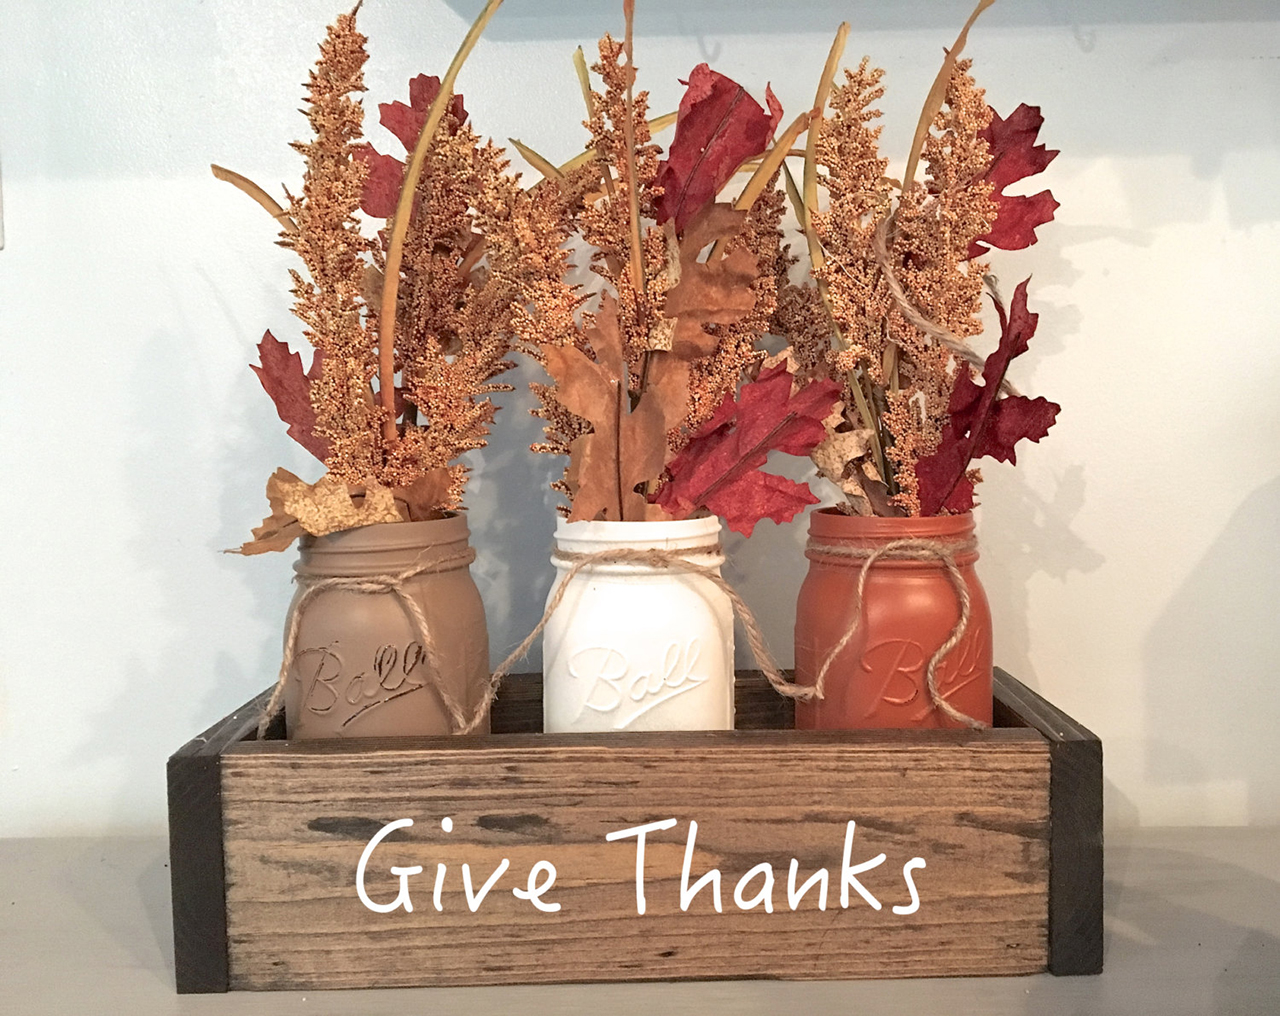 45 Best Diy Thanksgiving Centerpiece Ideas And Decorations For 2021